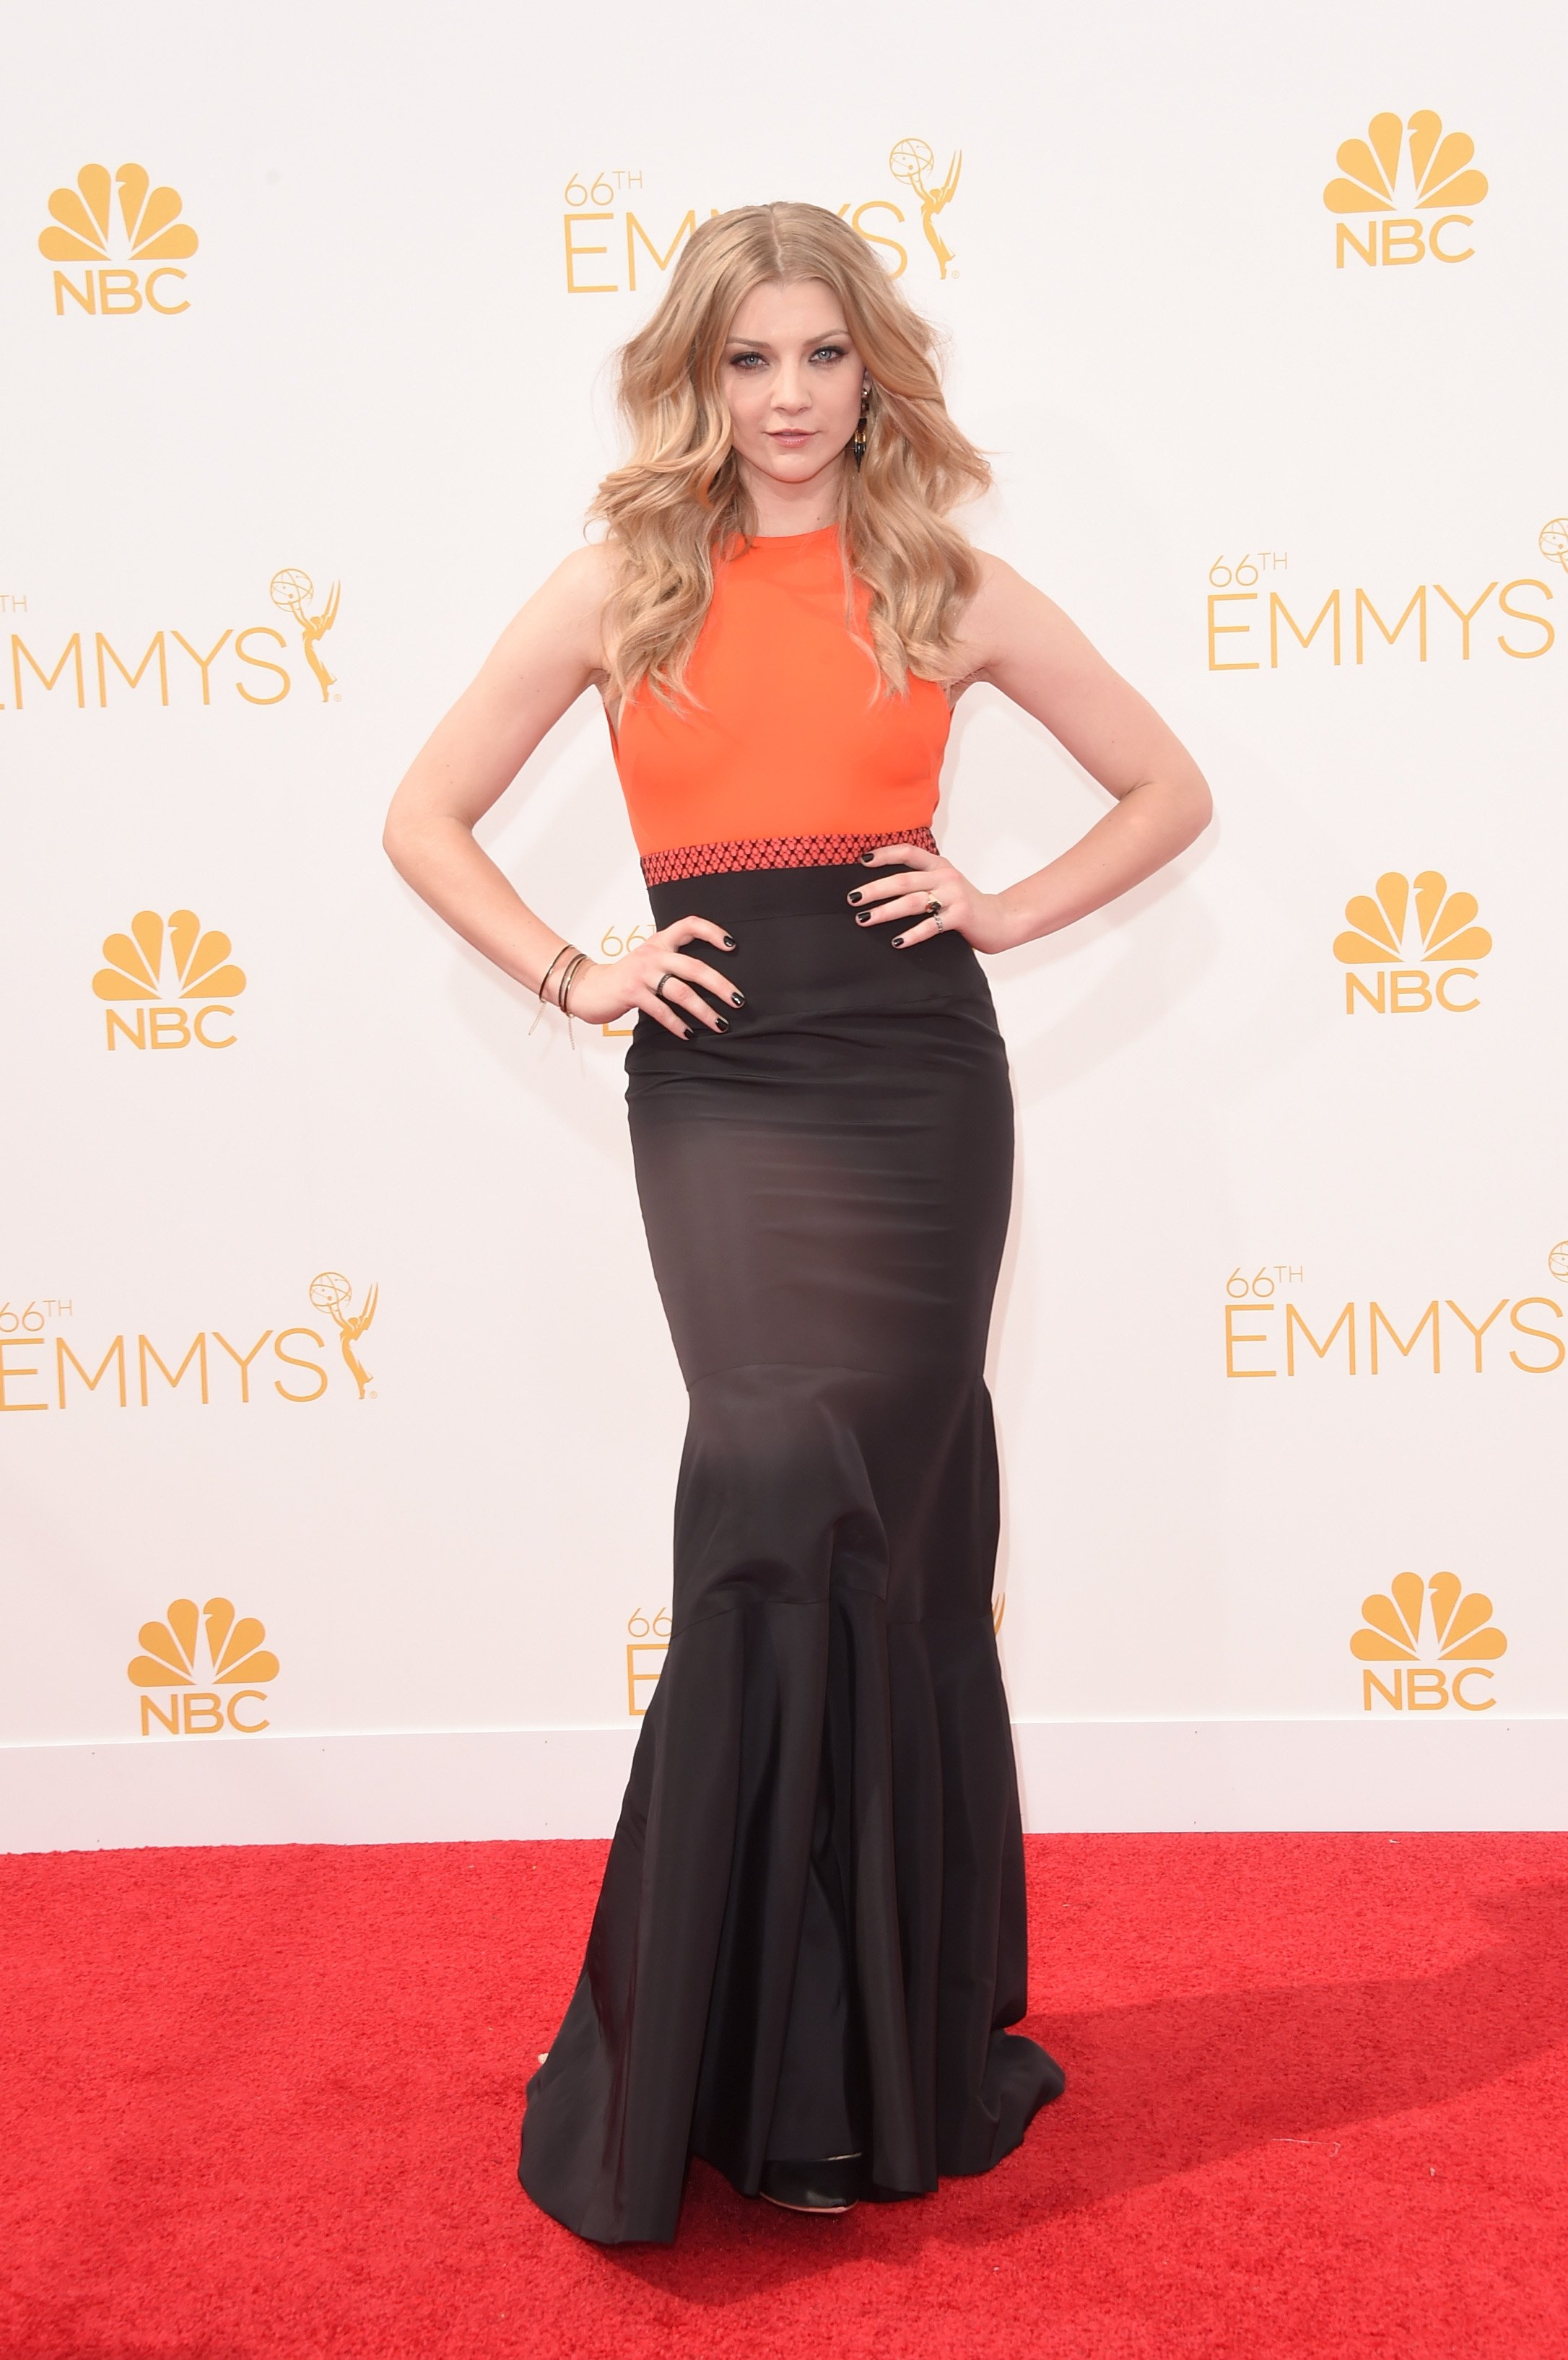 Natalie Dormer attends the 66th Annual Primetime Emmy Awards held at Nokia Theatre L.A. Live on August 25, 2014 in Los Angeles, California.